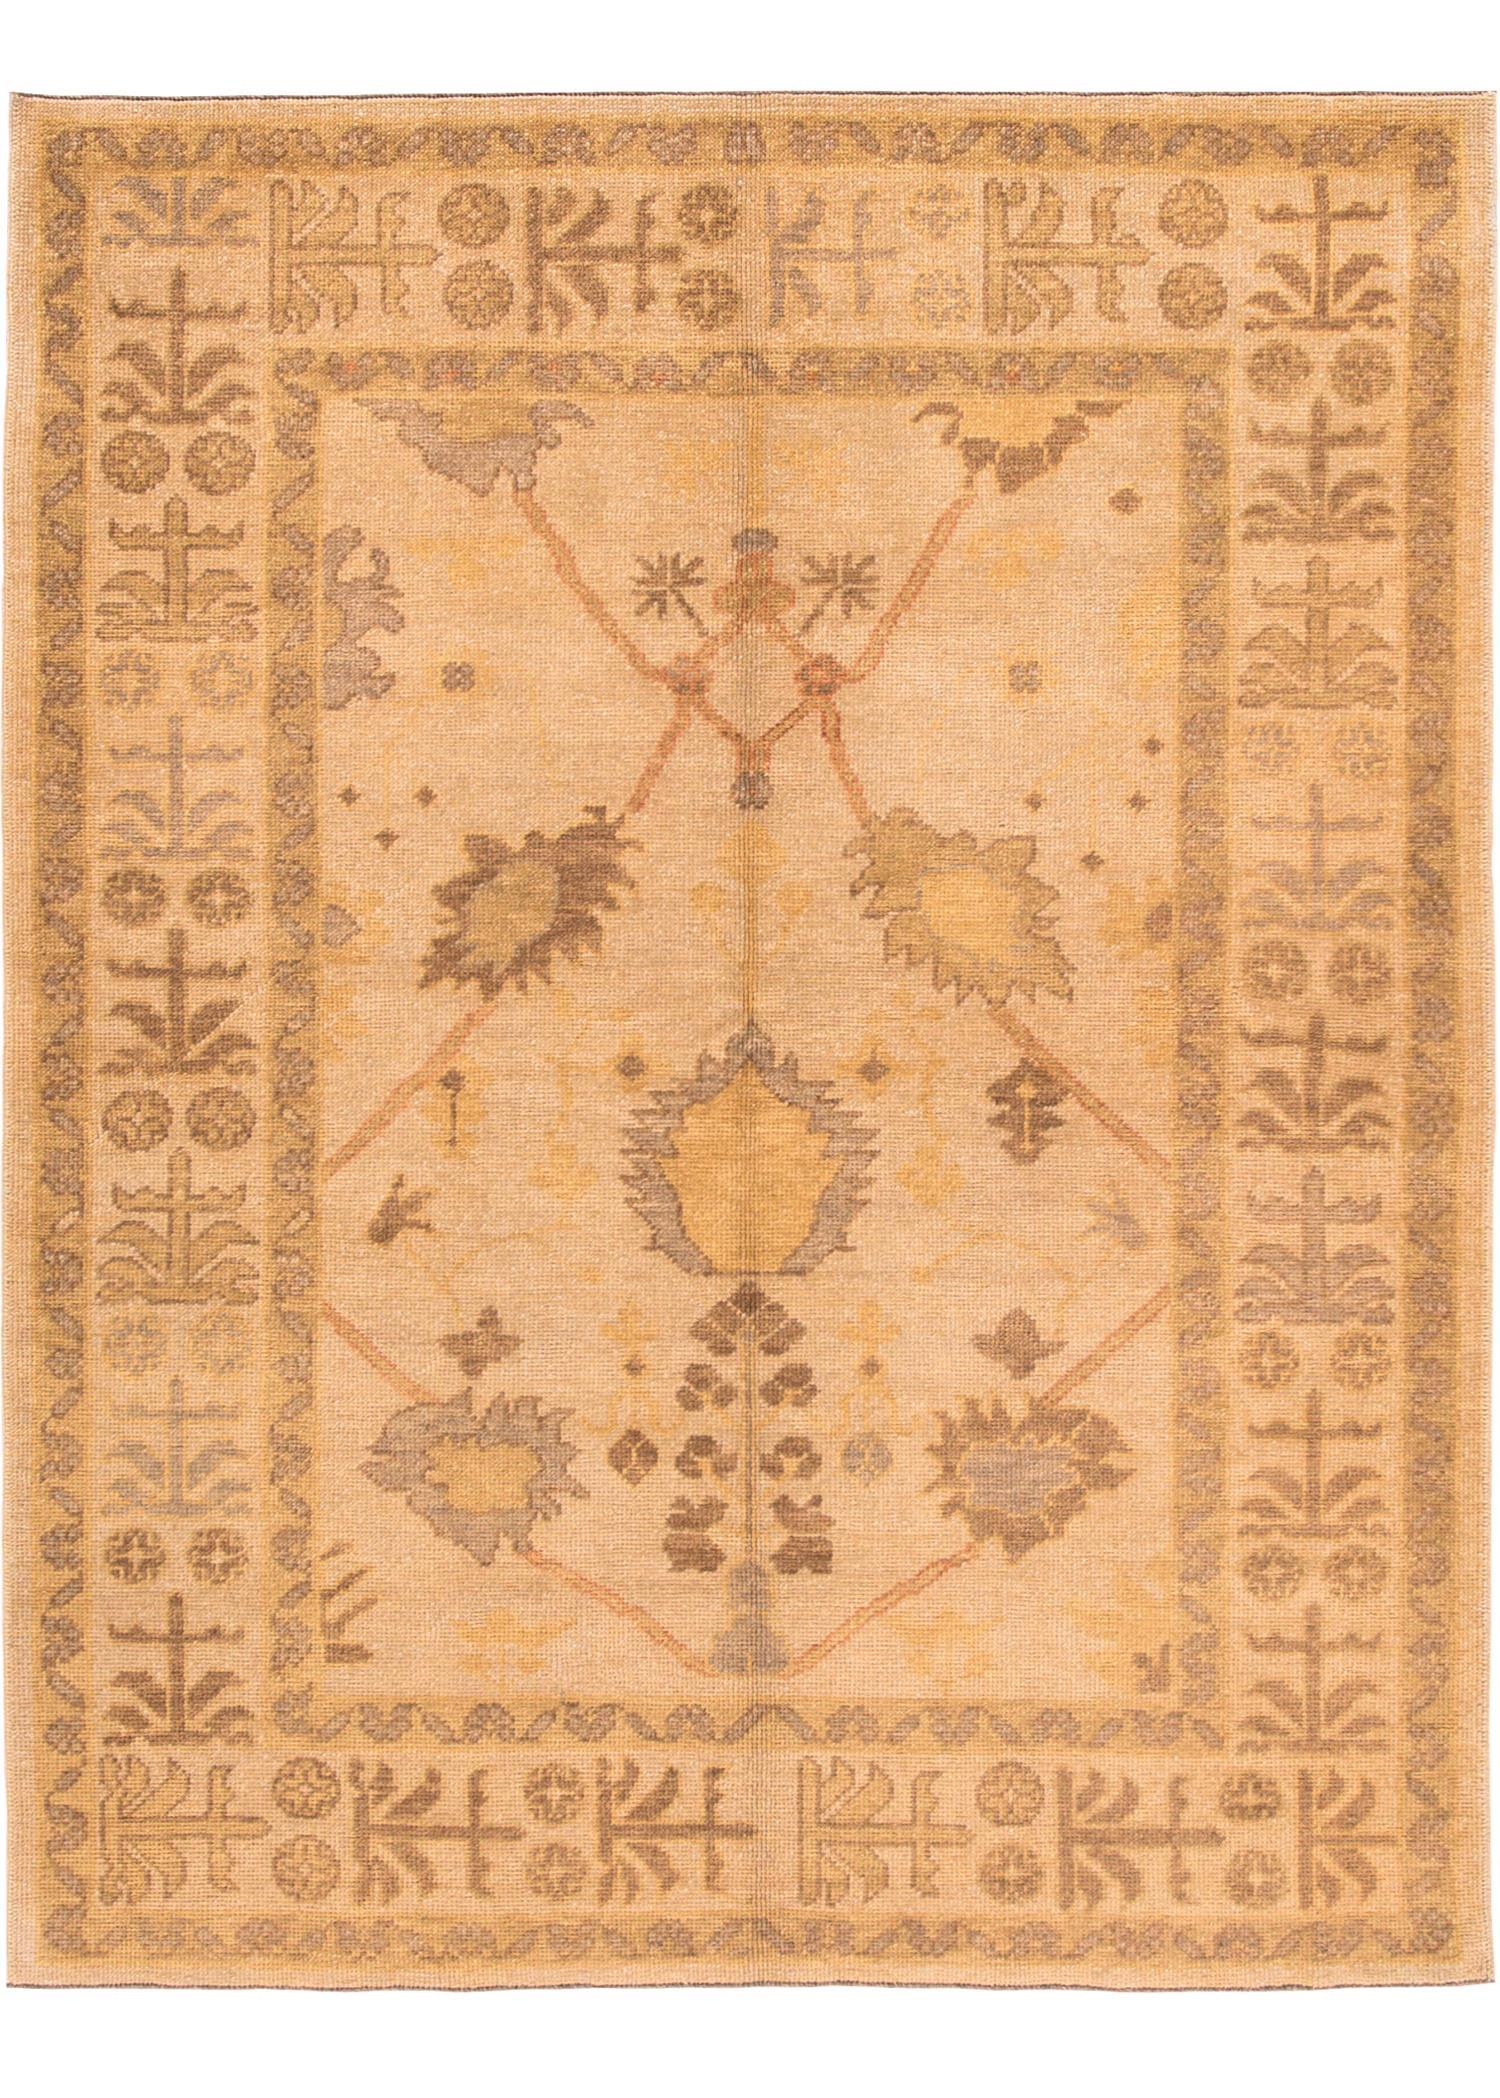 Modern Turkish Rug, 6' X 8'